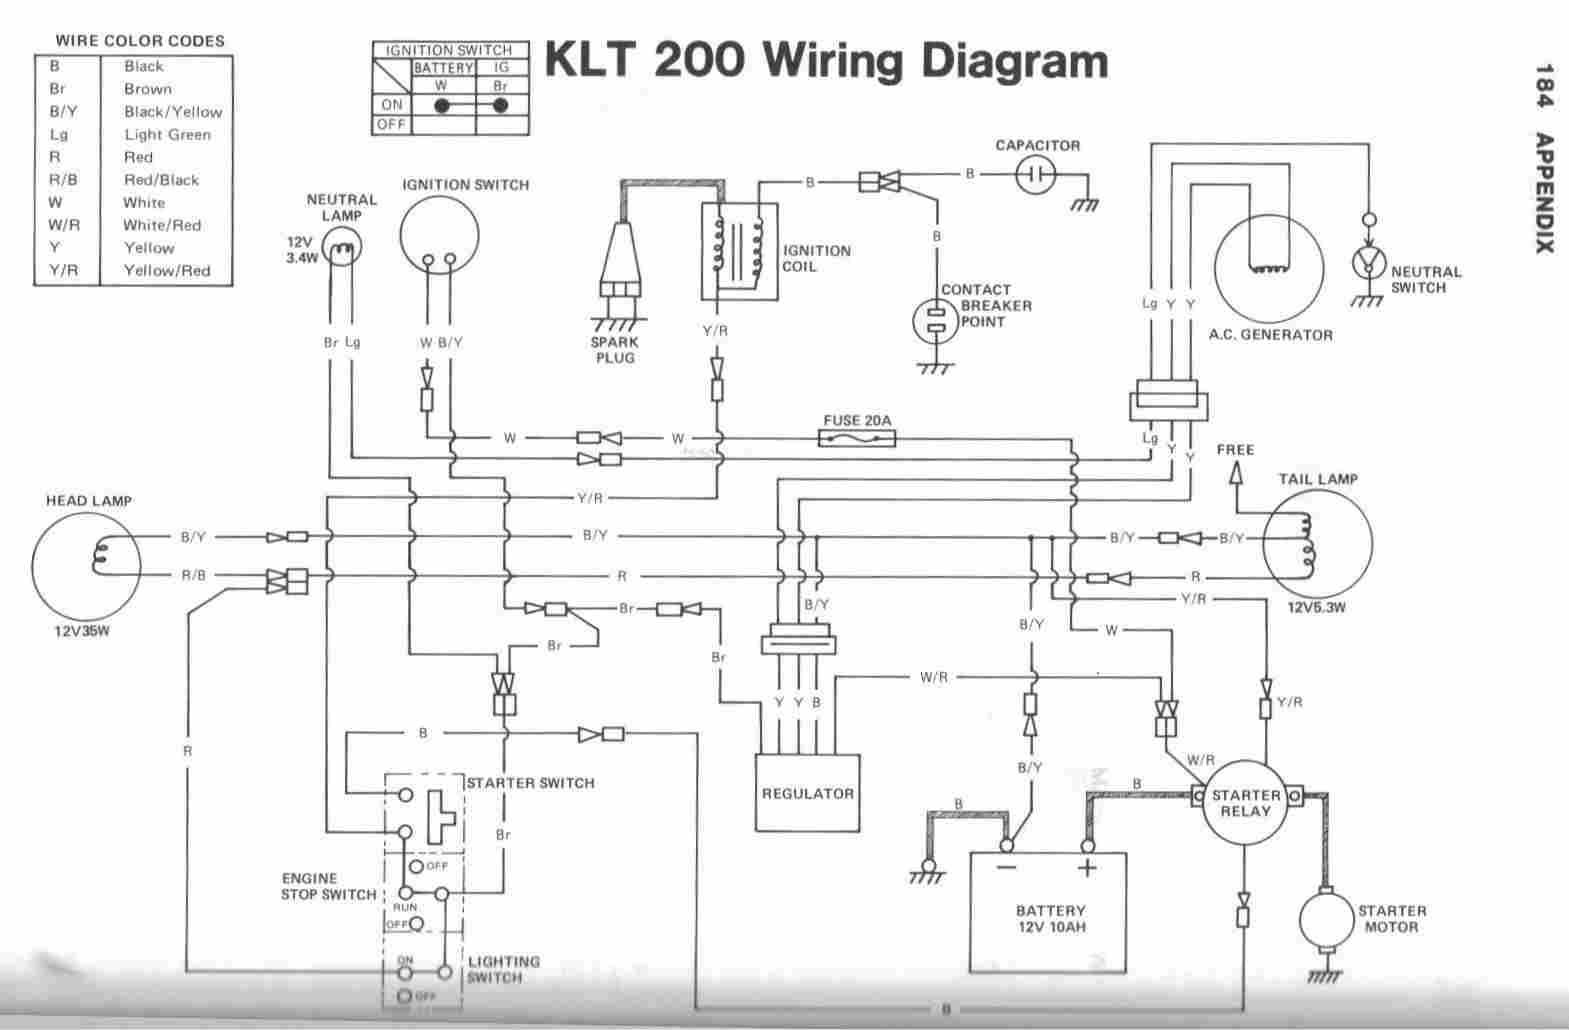 2869034594ce054a636782e5c44b61b4 residential electrical wiring diagrams pdf easy routing cool residential electrical wiring diagrams pdf at bakdesigns.co